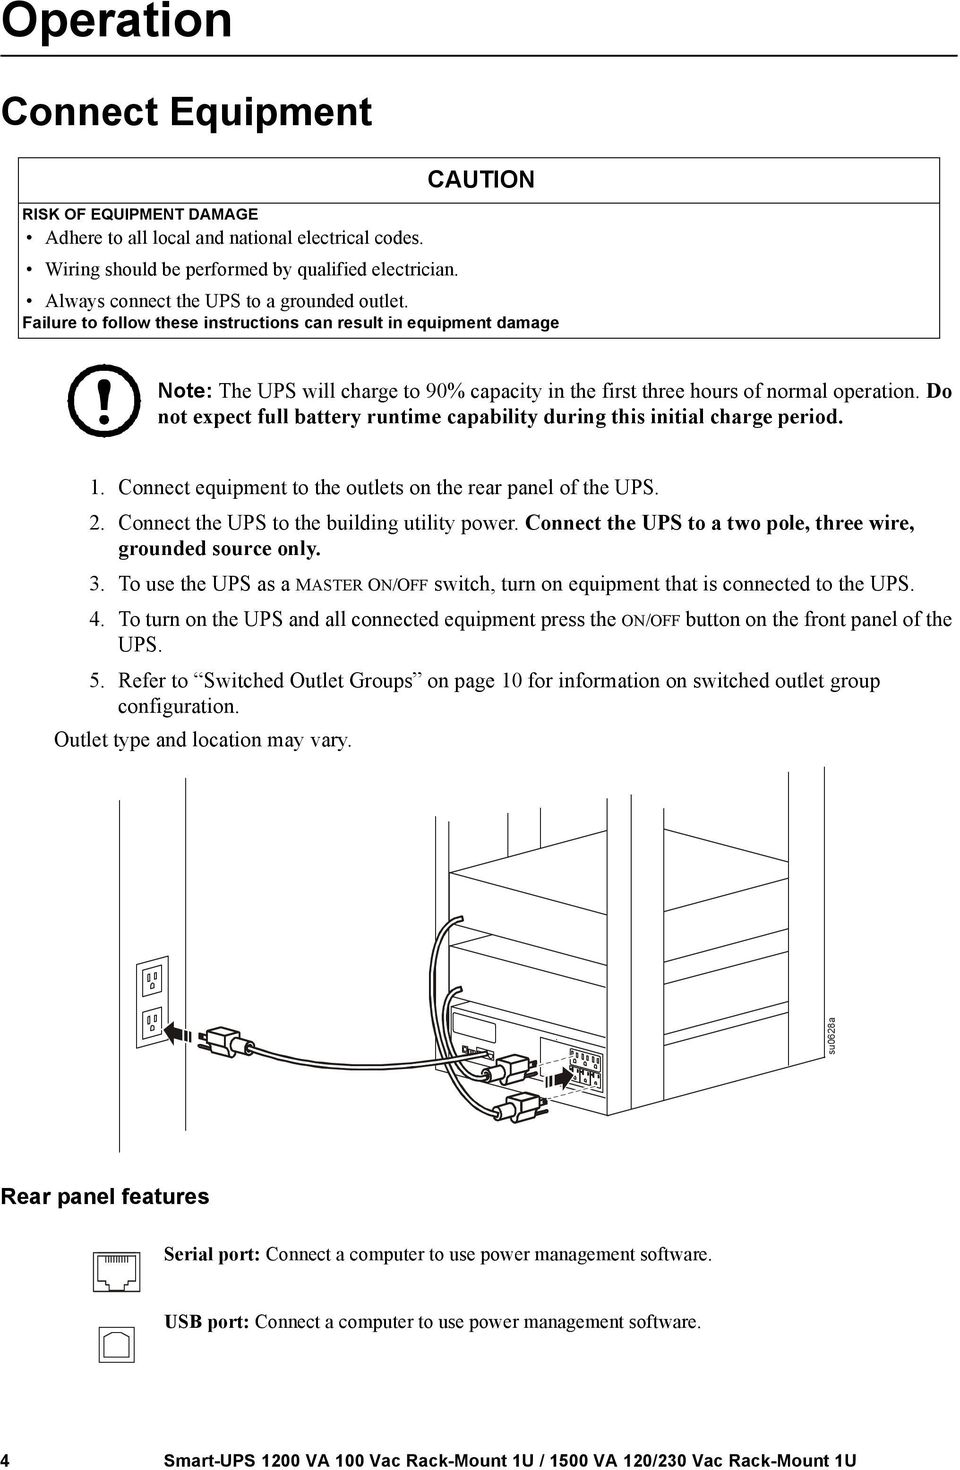 Do not epect full battery runtime capability during this initial charge period. 1. Connect equipment to the outlets on the rear panel of the UPS. 2. Connect the UPS to the building utility power.